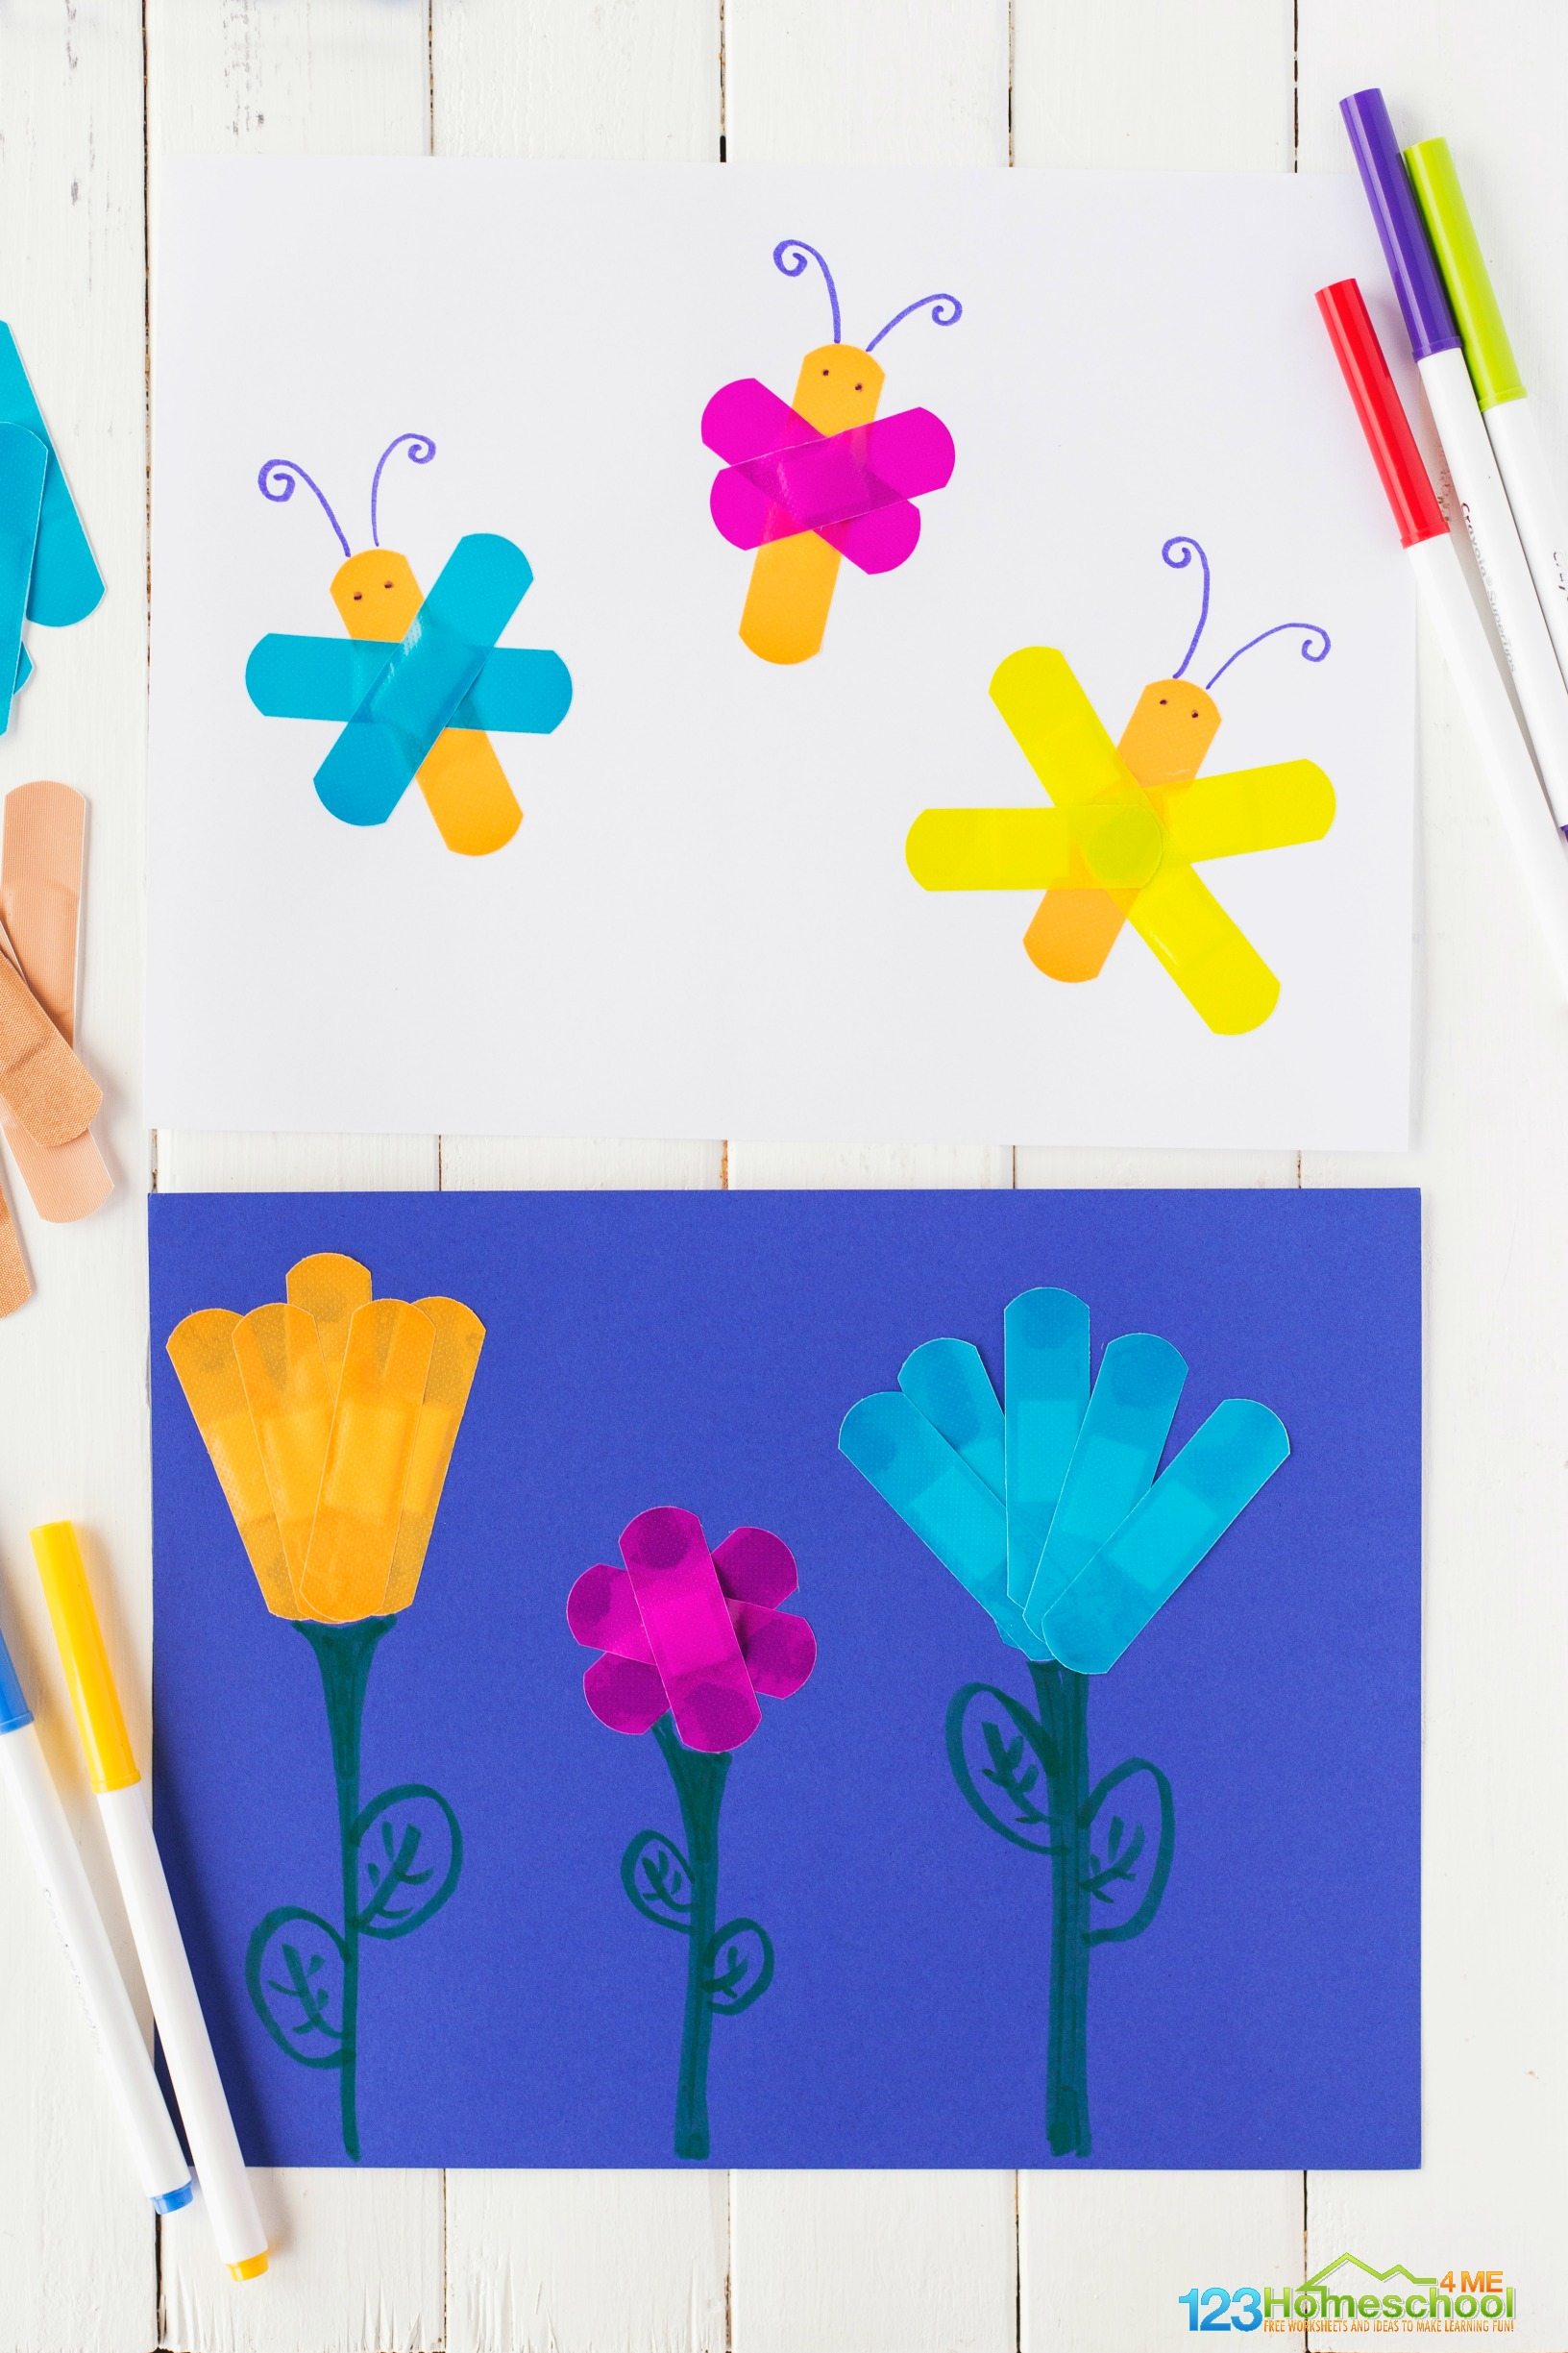 fun craft for preschoolers using bandaids to make butterflies, flowers, buildings, trees, trucks, and more!